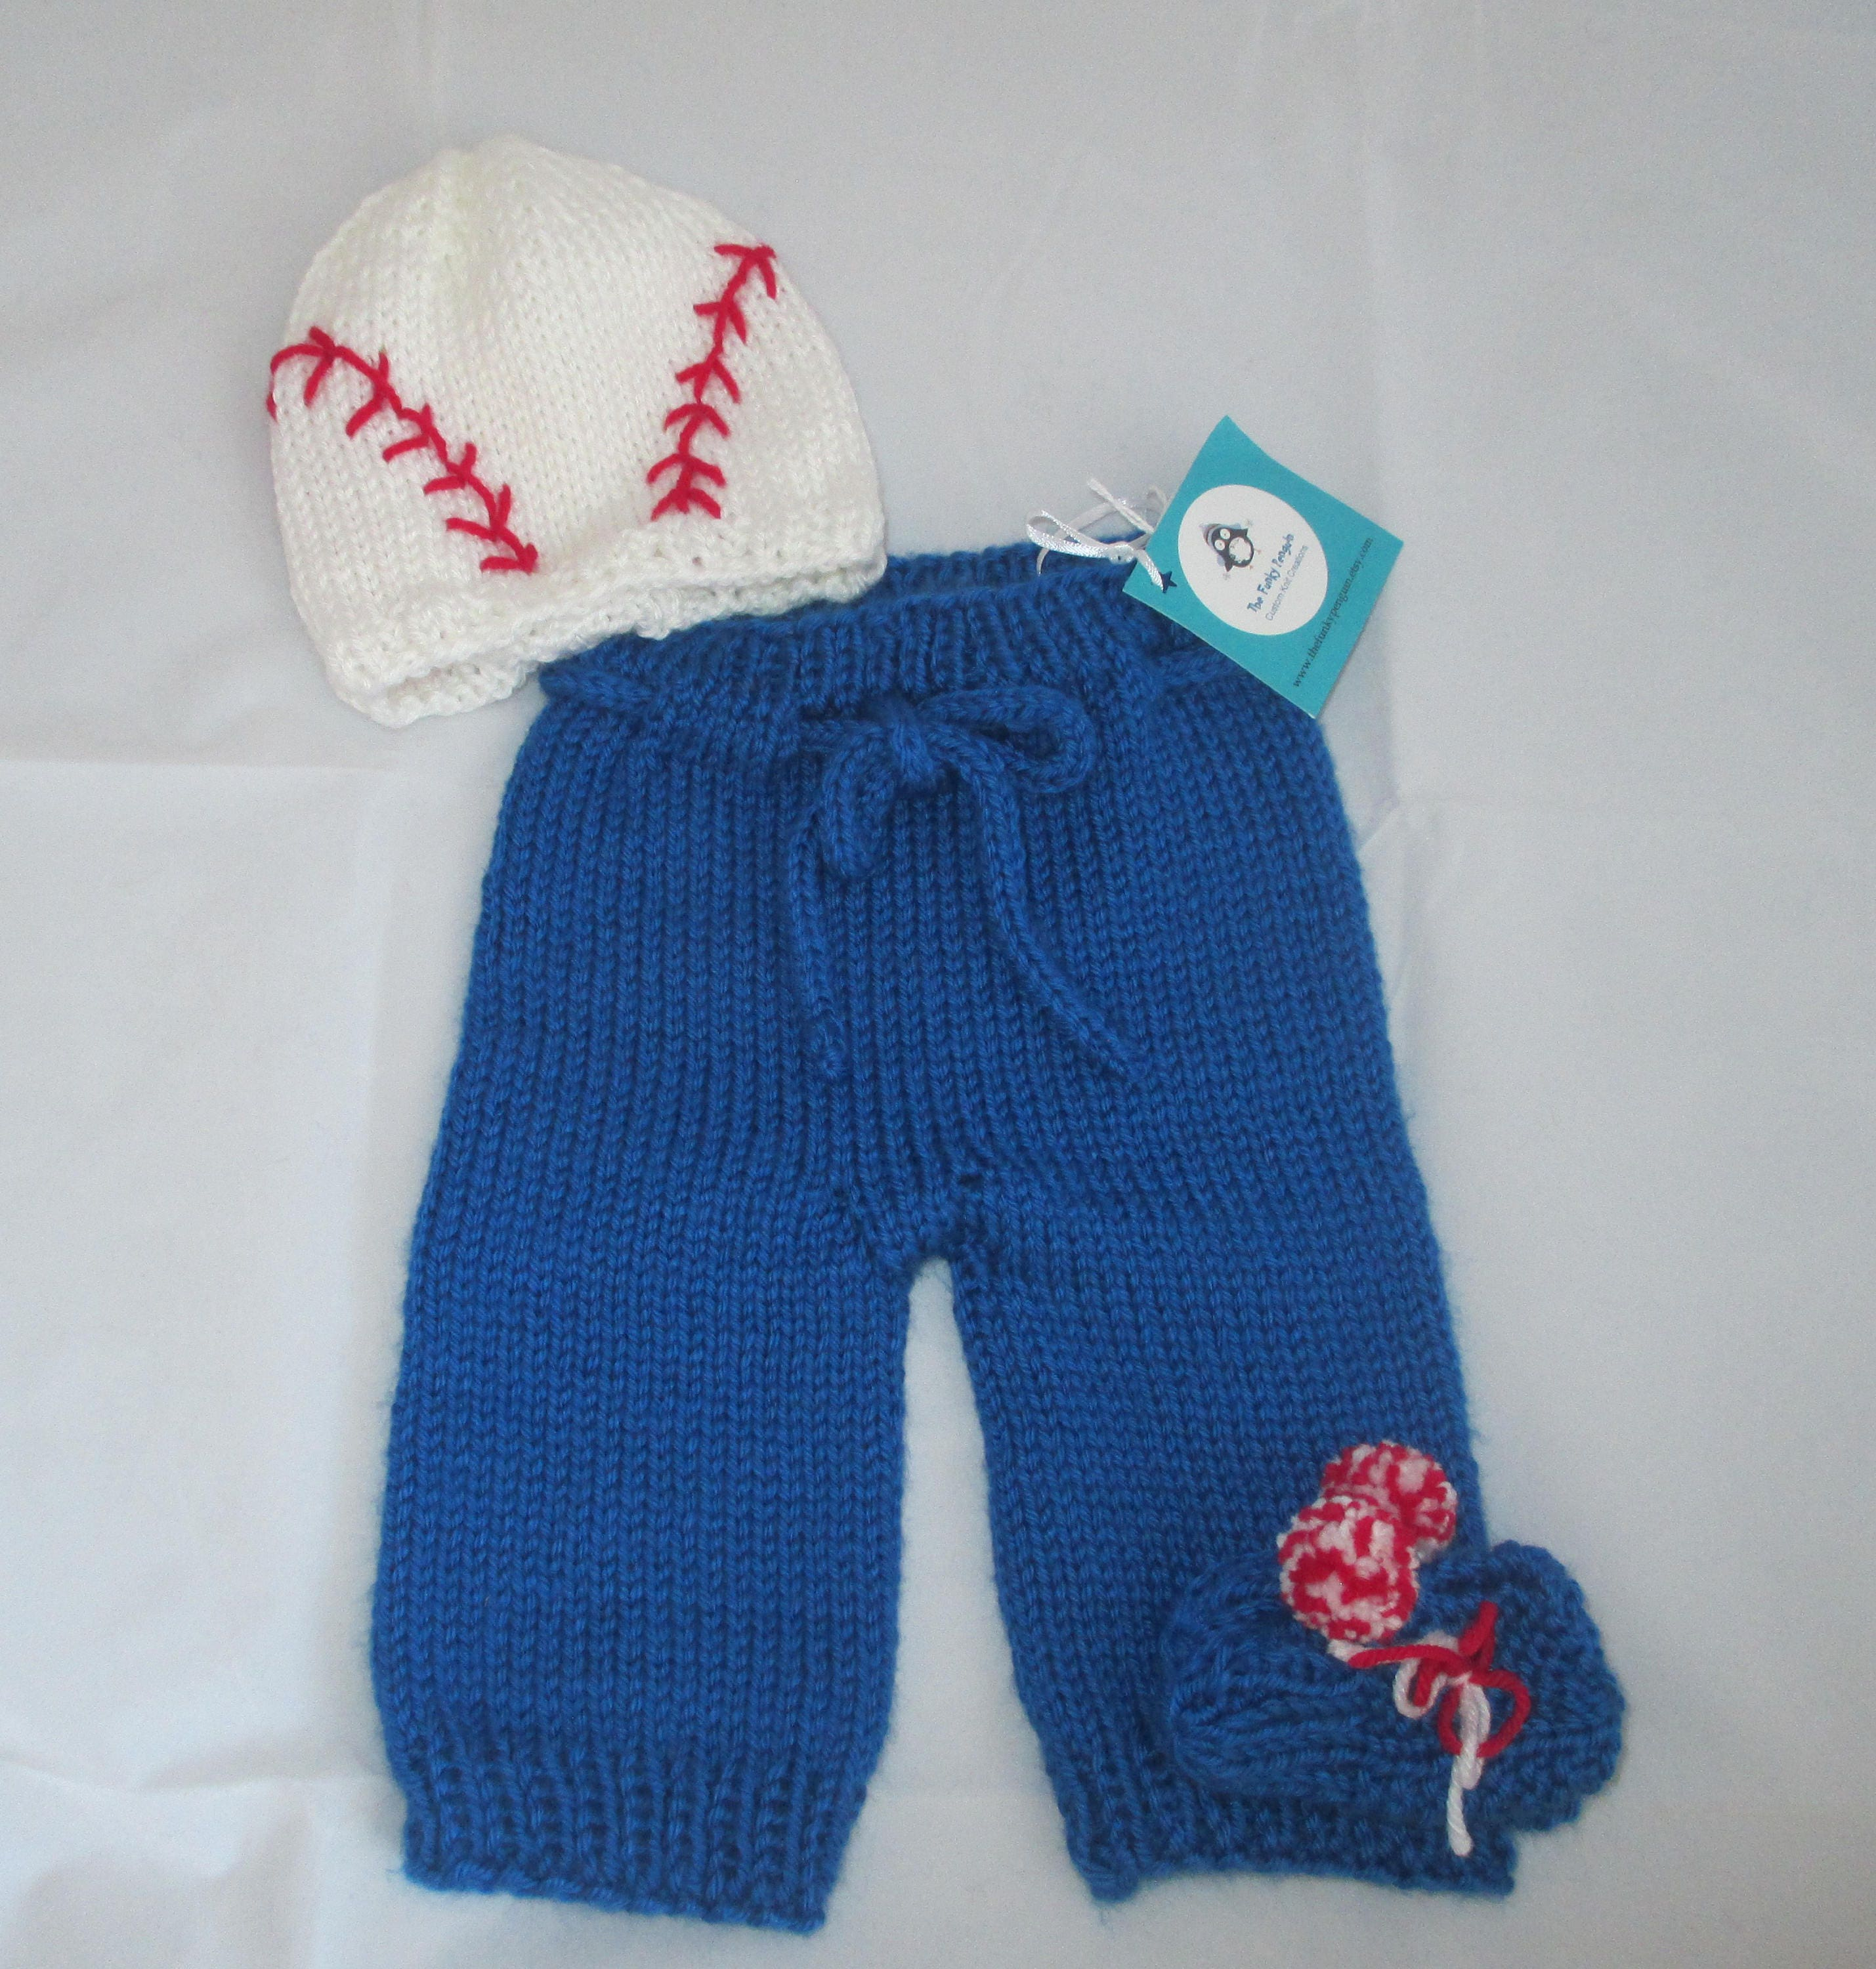 Chicago Cubs baby pants set